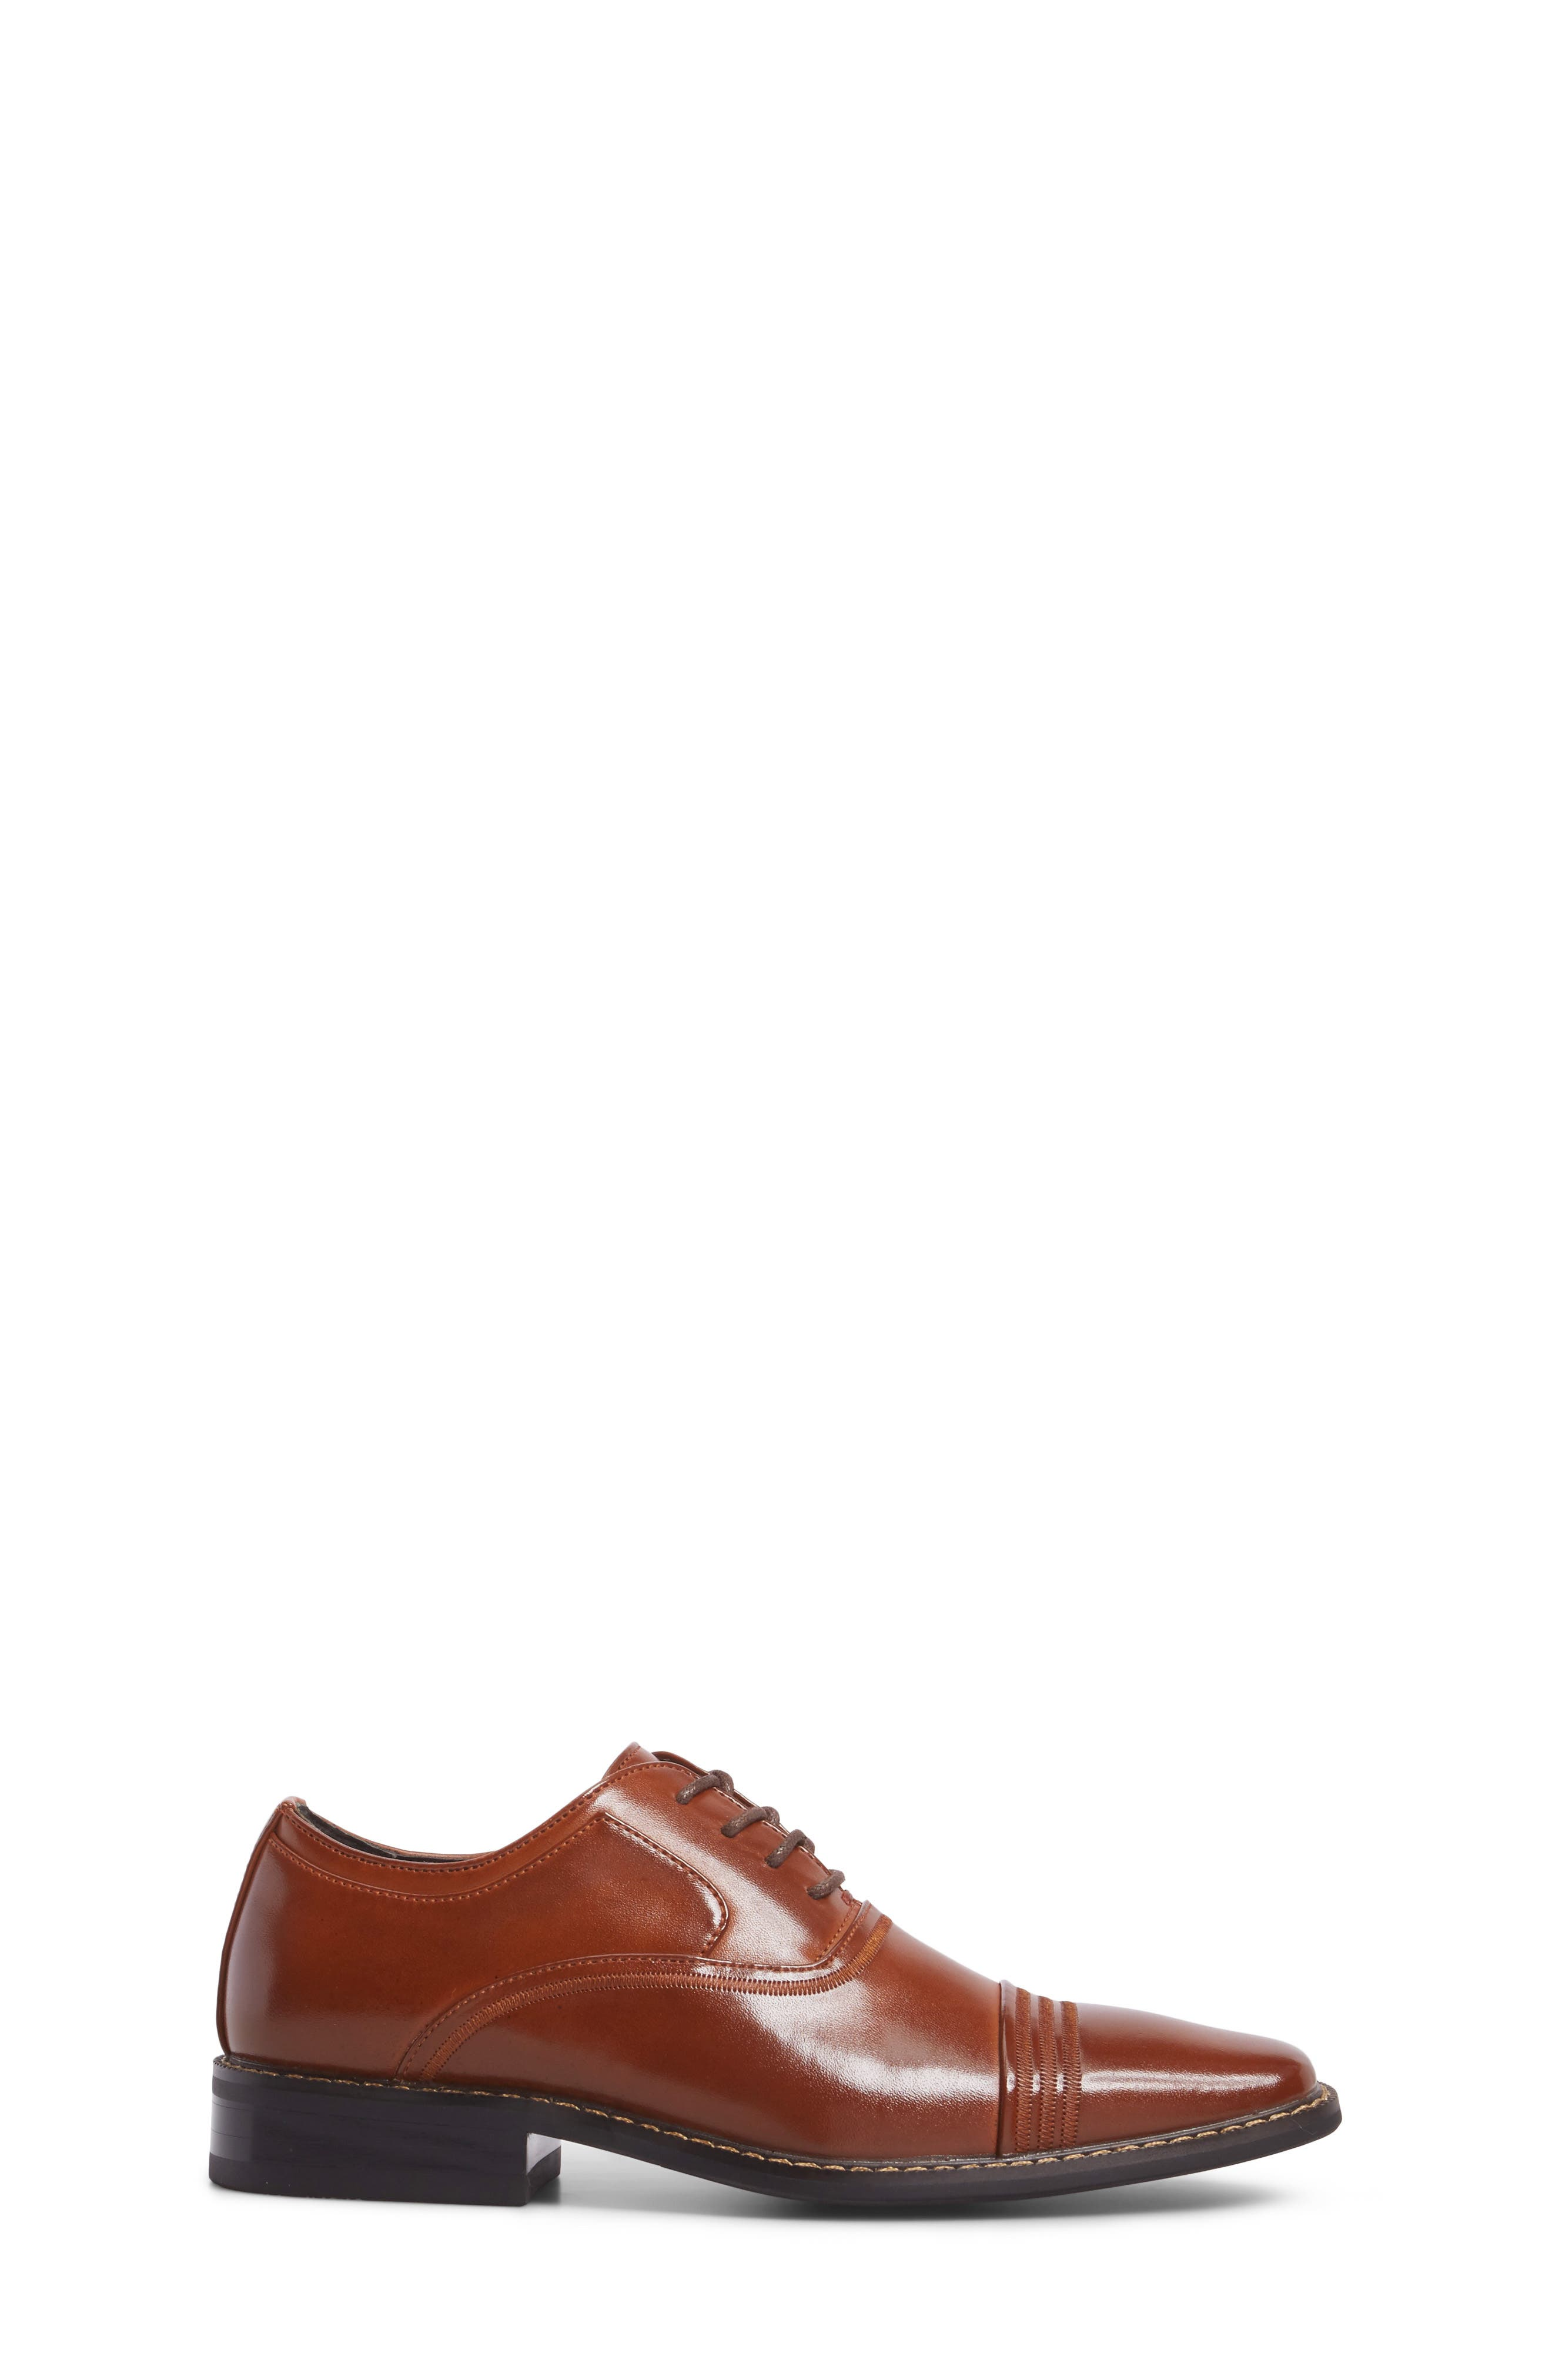 Alternate Image 3  - Stacy Adams Bingham Cap Toe Oxford (Toddler, Little Kid & Big Kid)